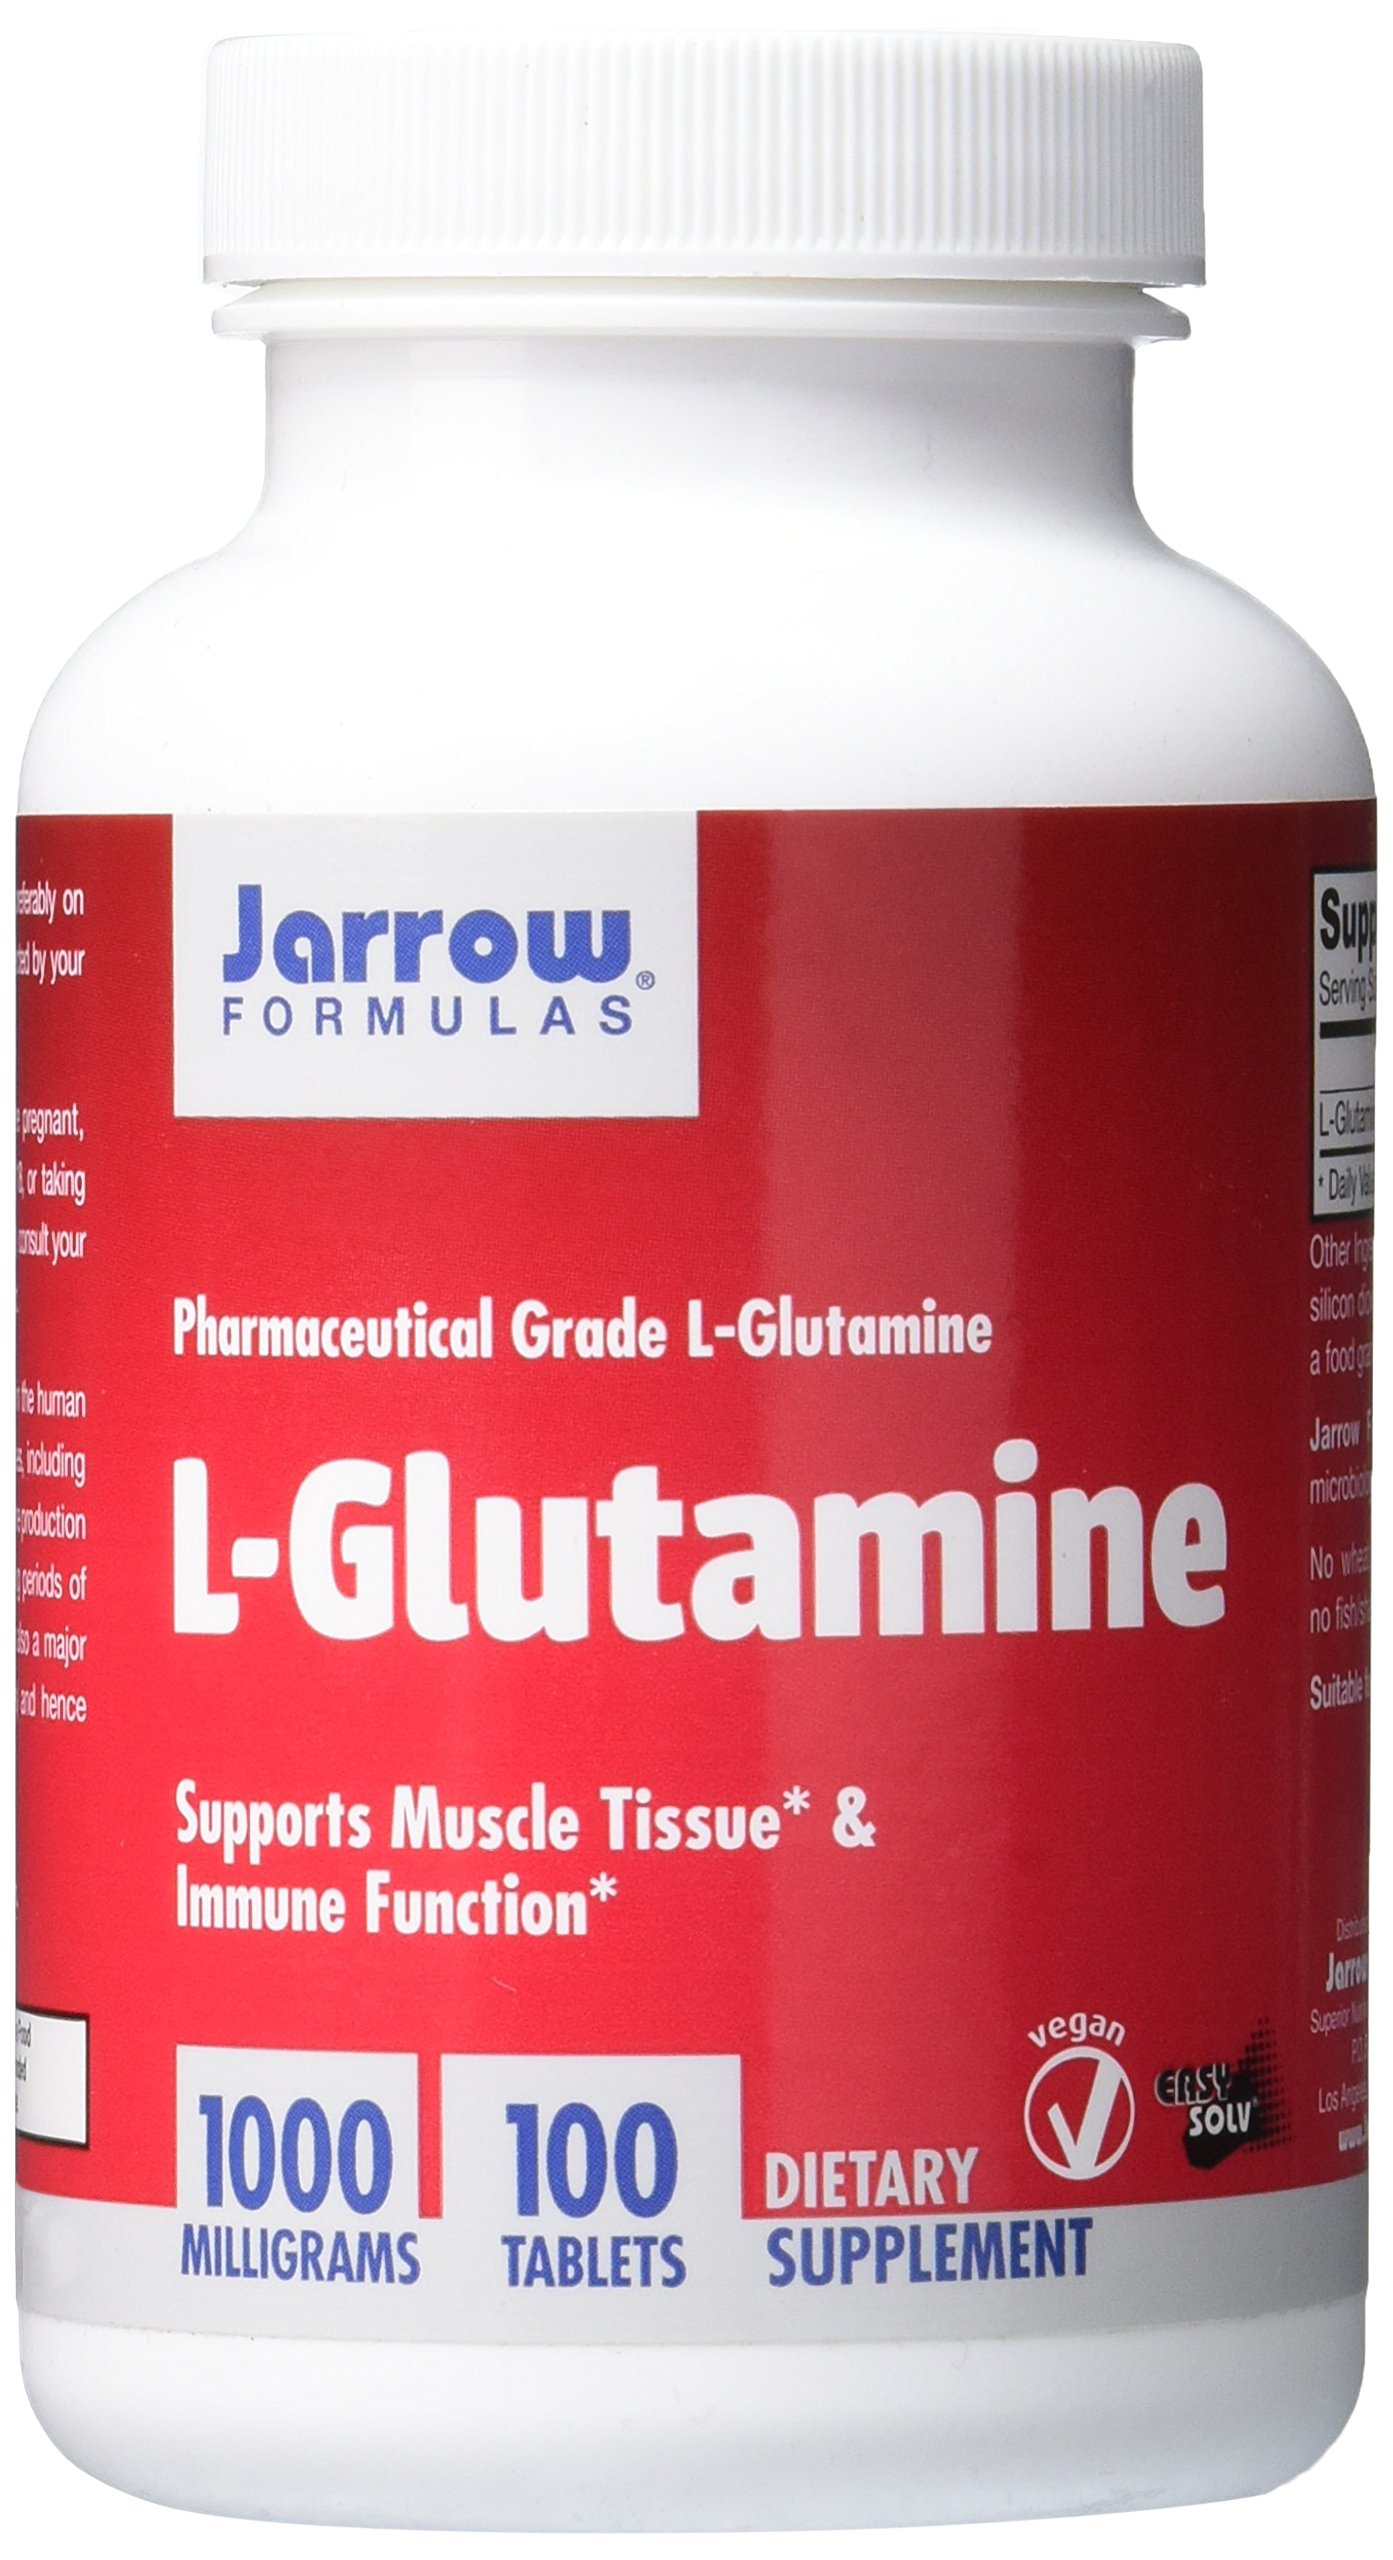 Jarrow Formulations Jarrow L-glutamine , Supports Muscle Tissue & Immune Function, 1000 mg, 100 Easy-Solv Tabs